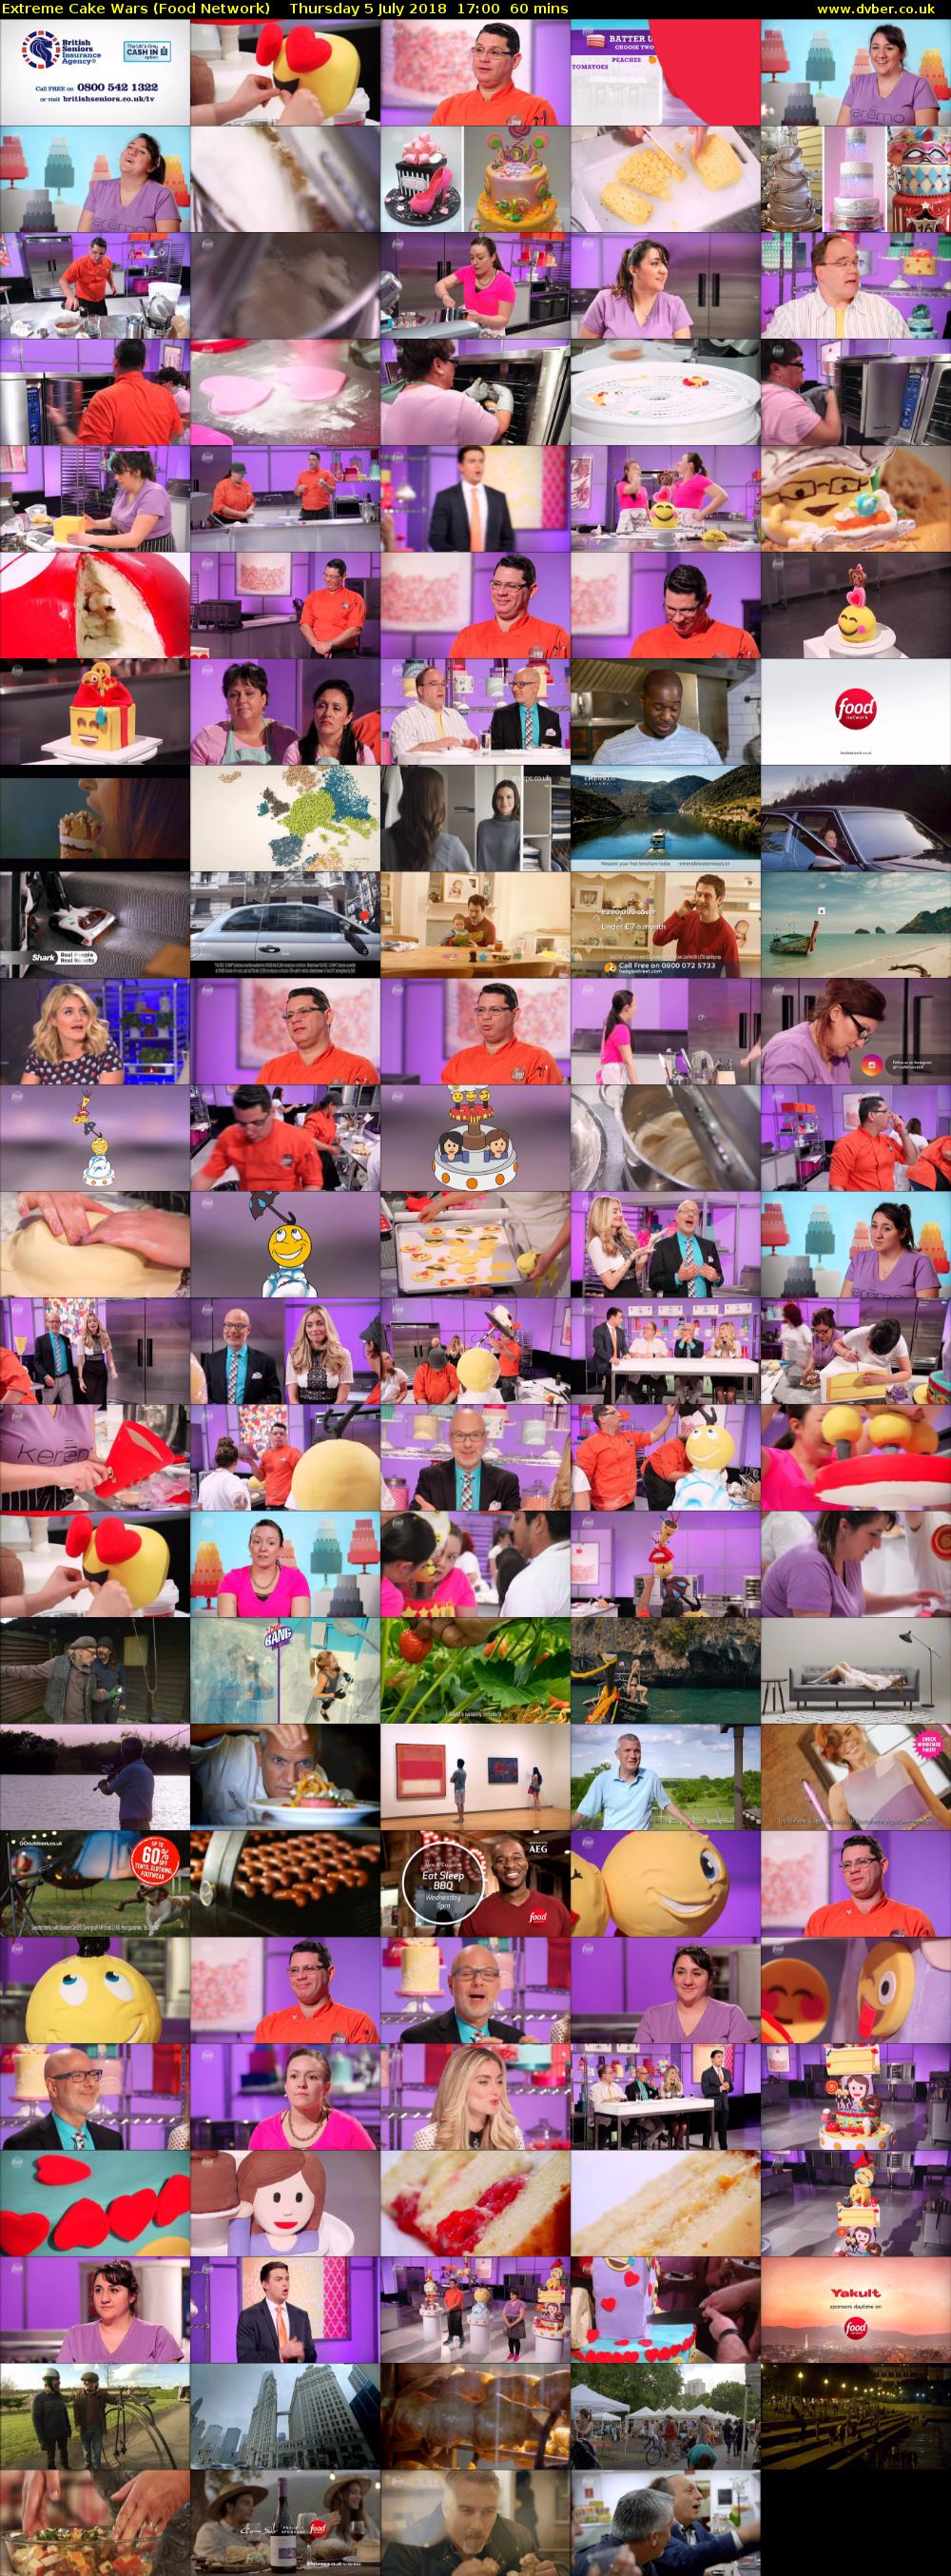 Extreme Cake Wars (Food Network) Thursday 5 July 2018 17:00 - 18:00